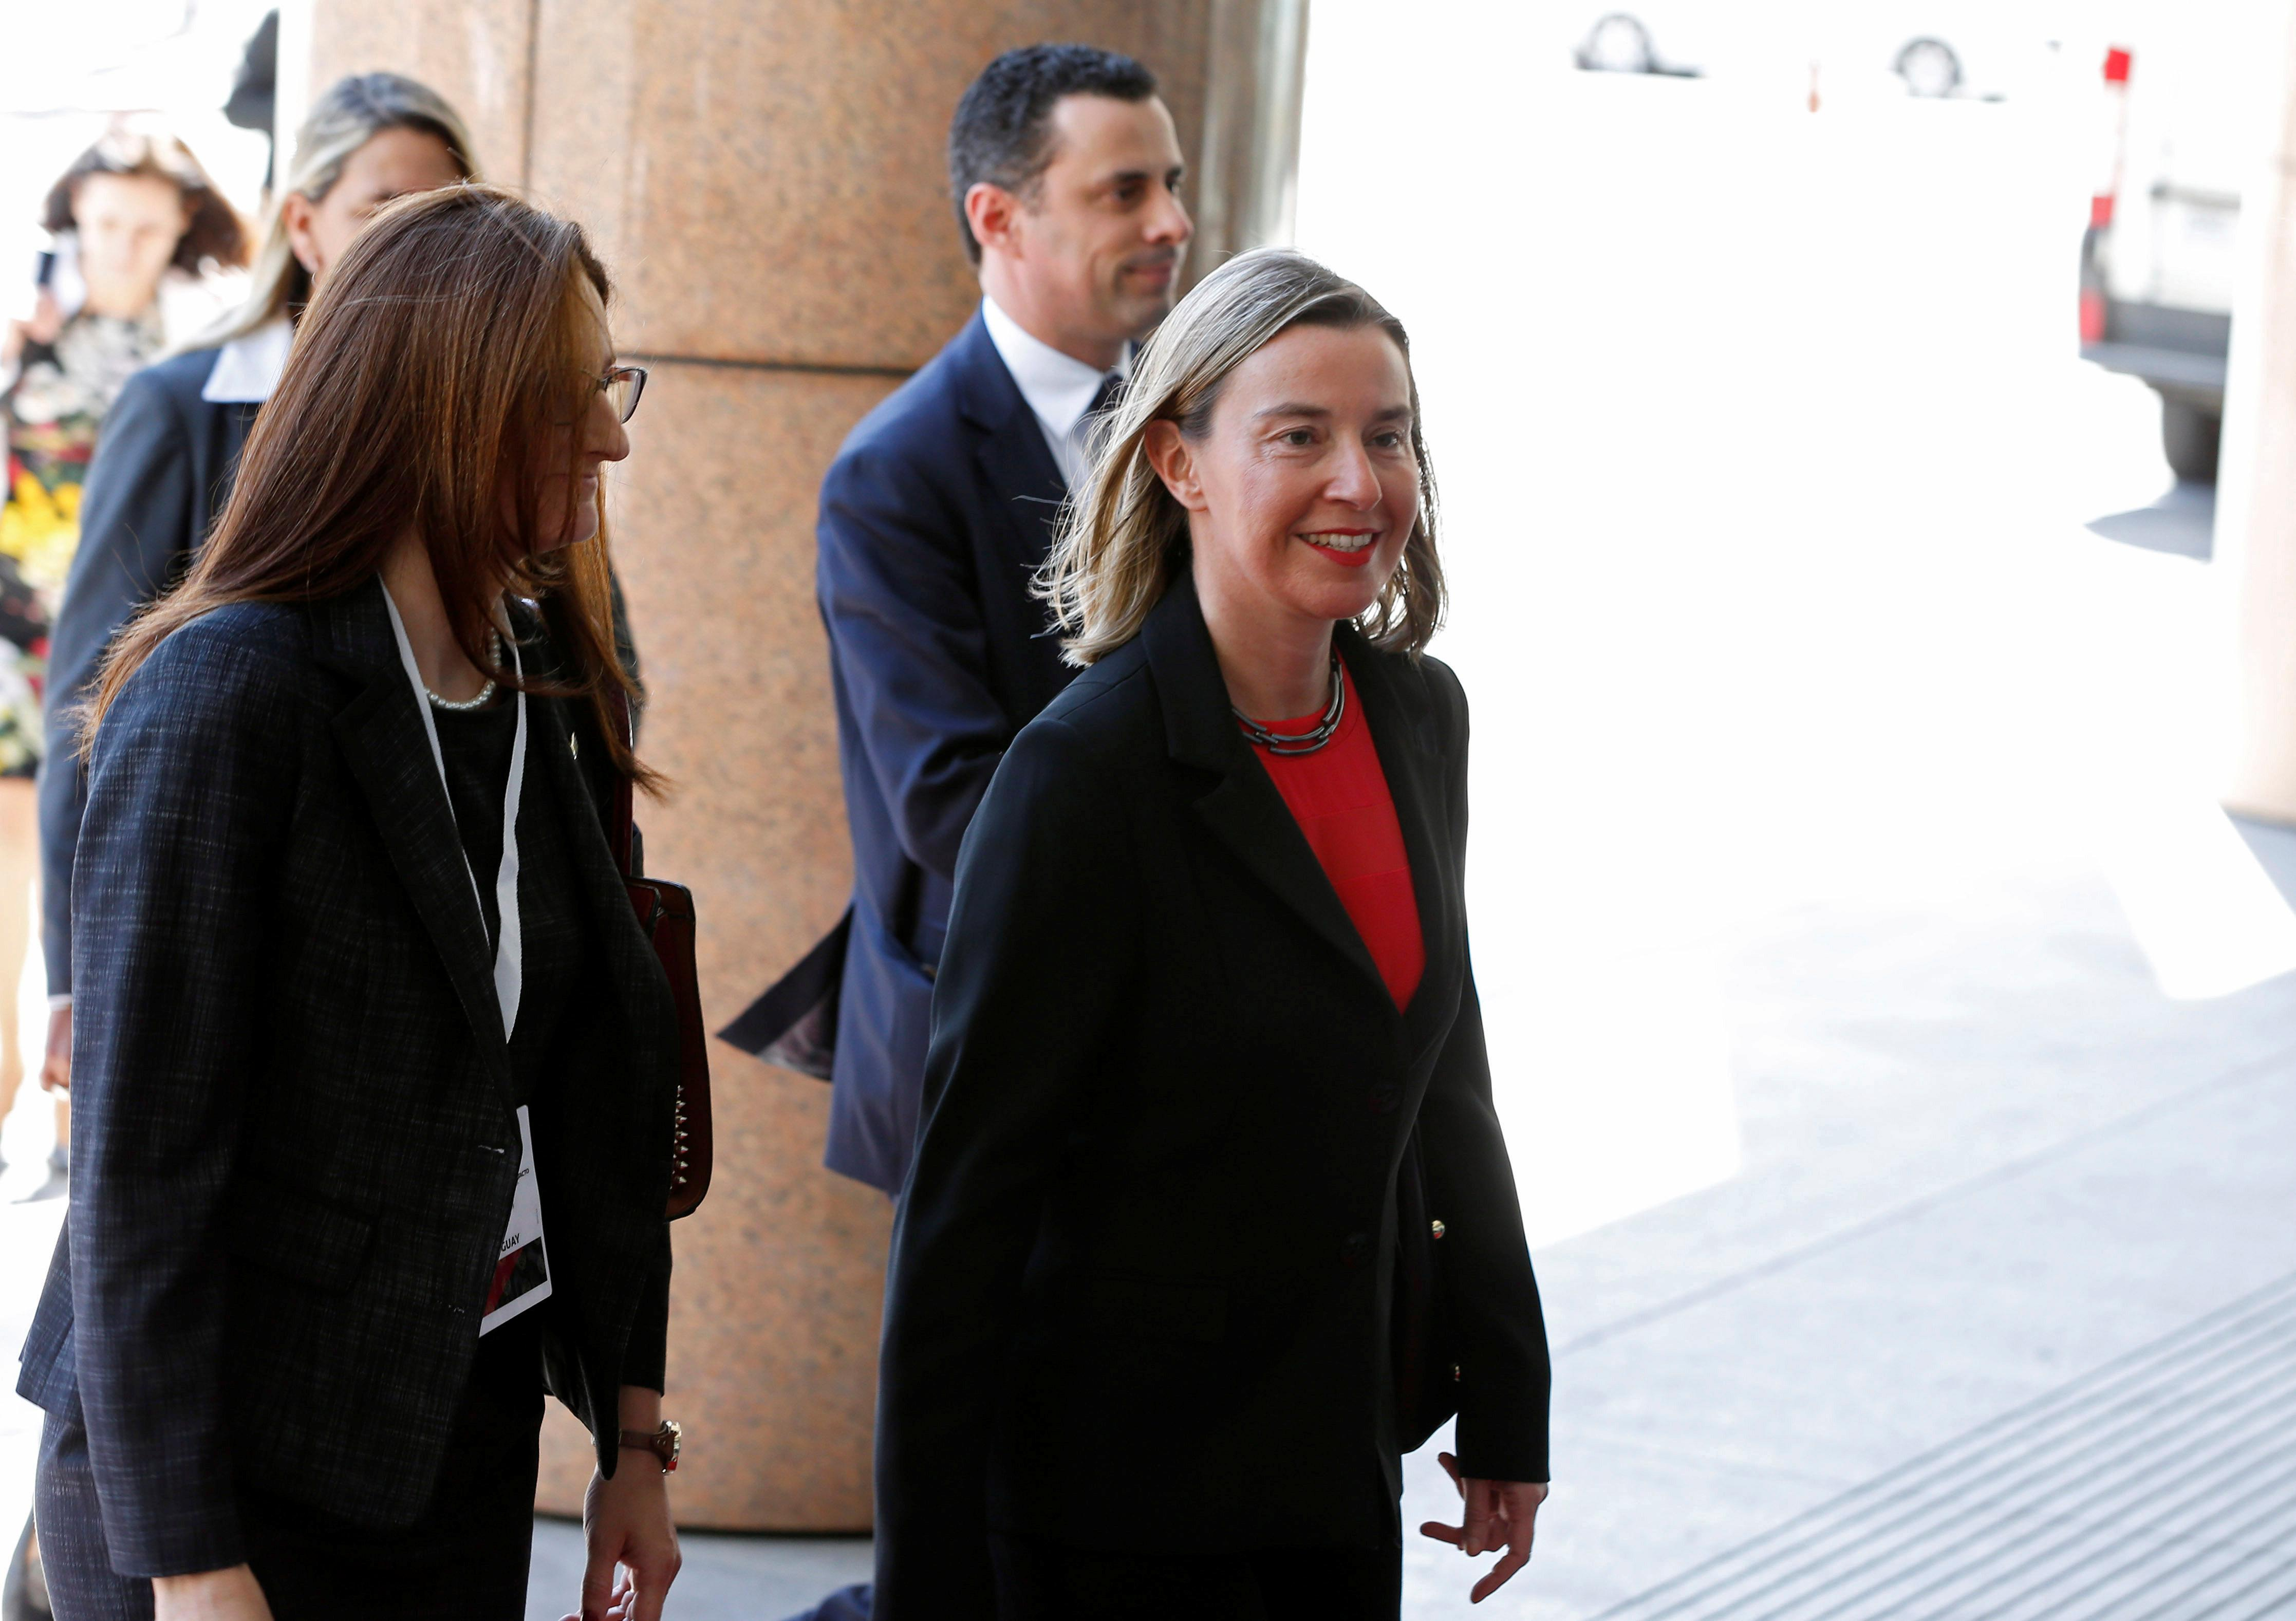 EU's Mogherini repeats call for peaceful solution in Venezuelan to avoid chaos